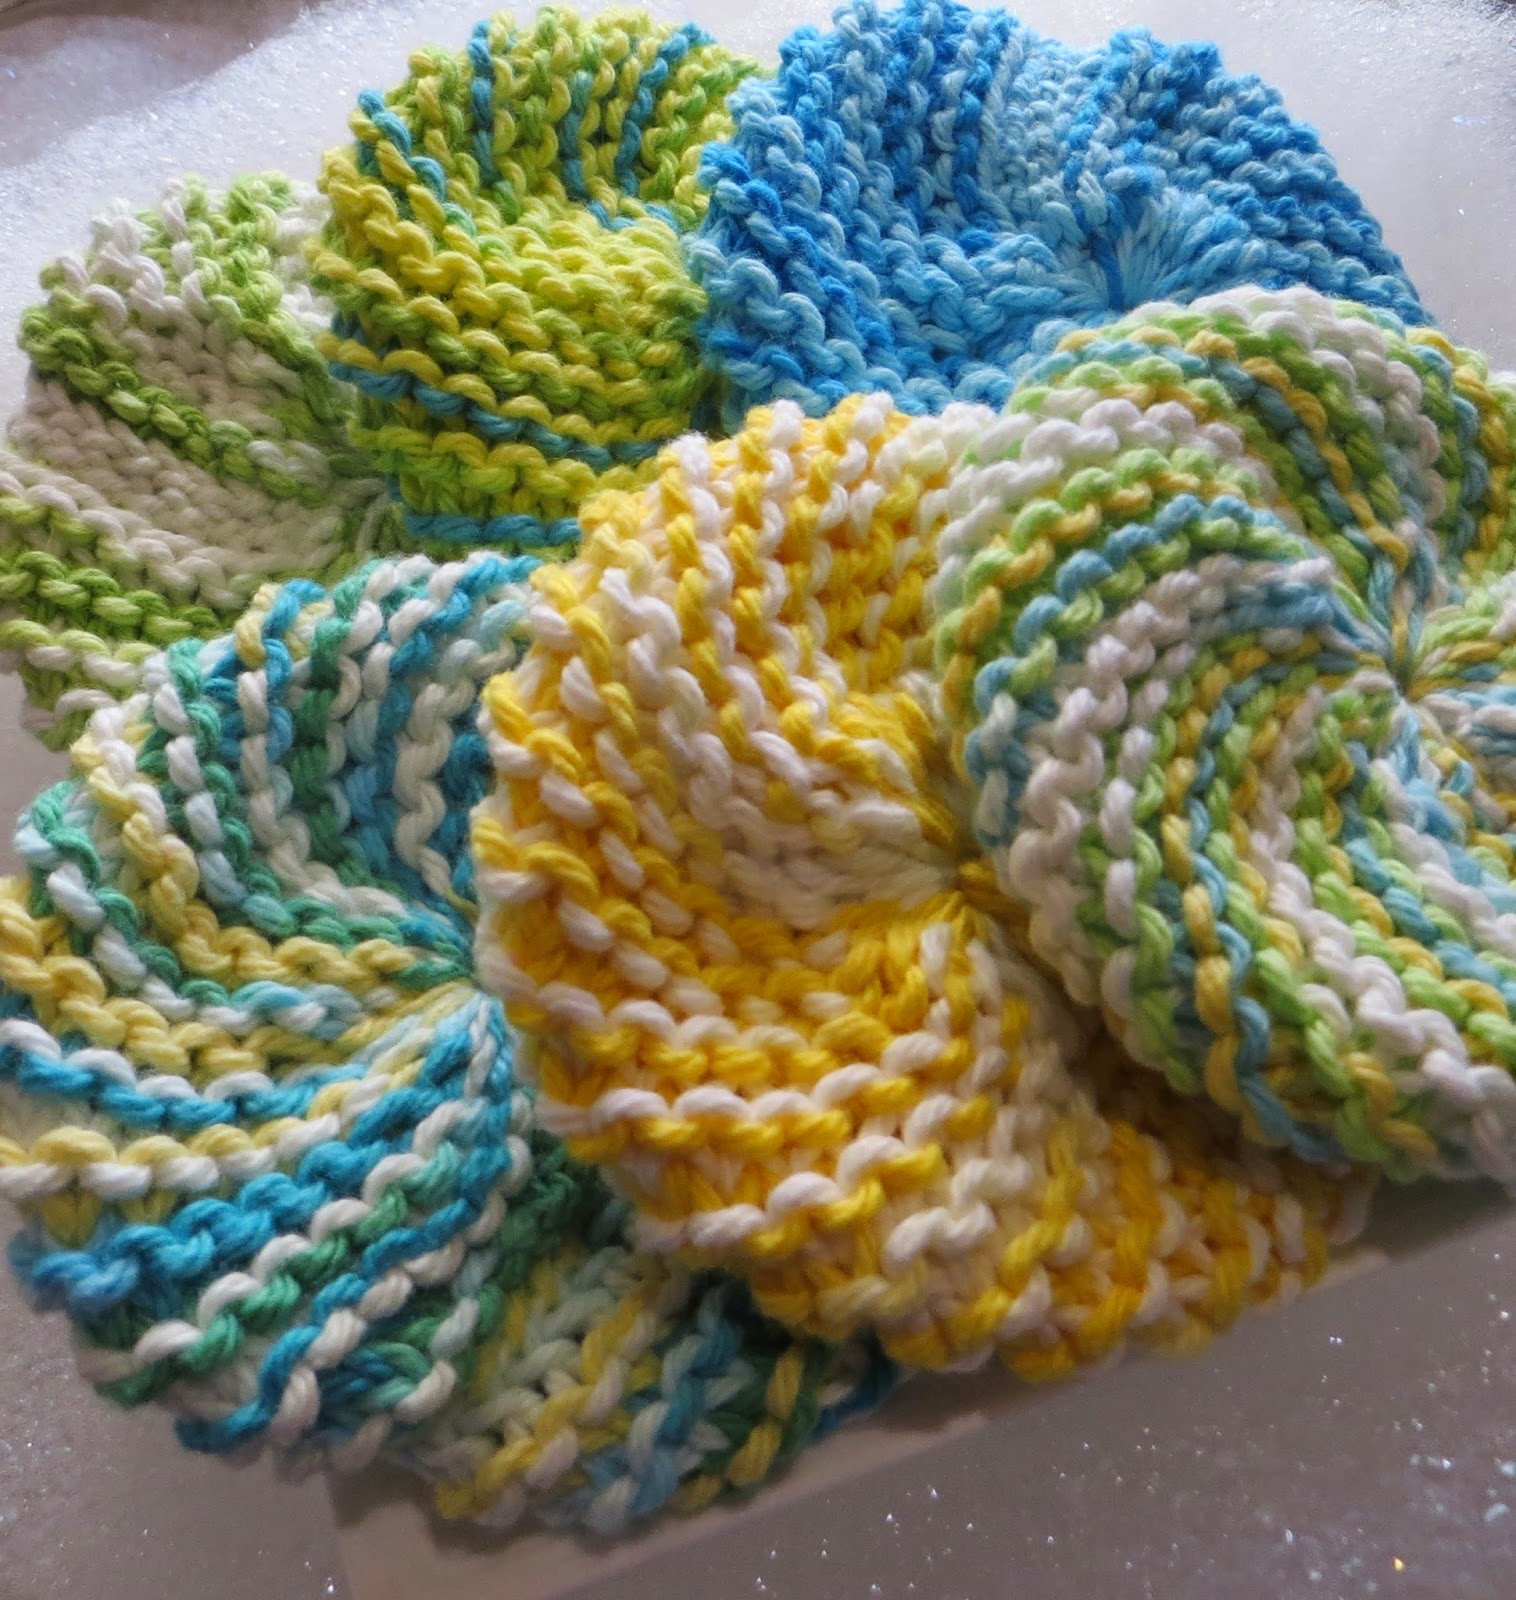 Unique Free Crochet Patterns for Scrubby Yarn Pakbit for Scrubby Yarn Knit Patterns Of Luxury 40 Ideas Scrubby Yarn Knit Patterns